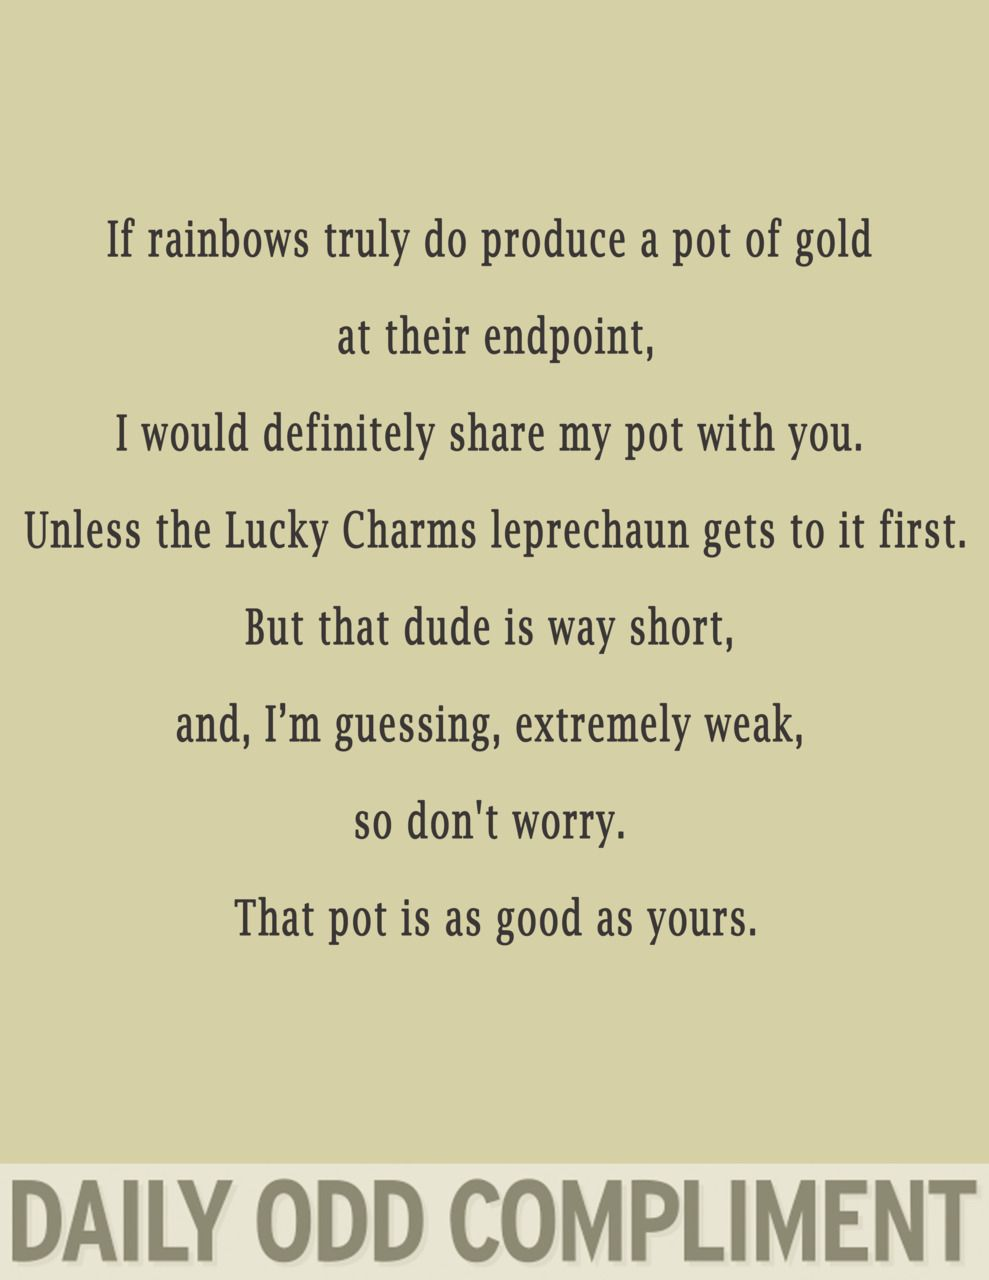 Pot Of Gold Daily Odd Compliment Odd Compliment Daily Odd